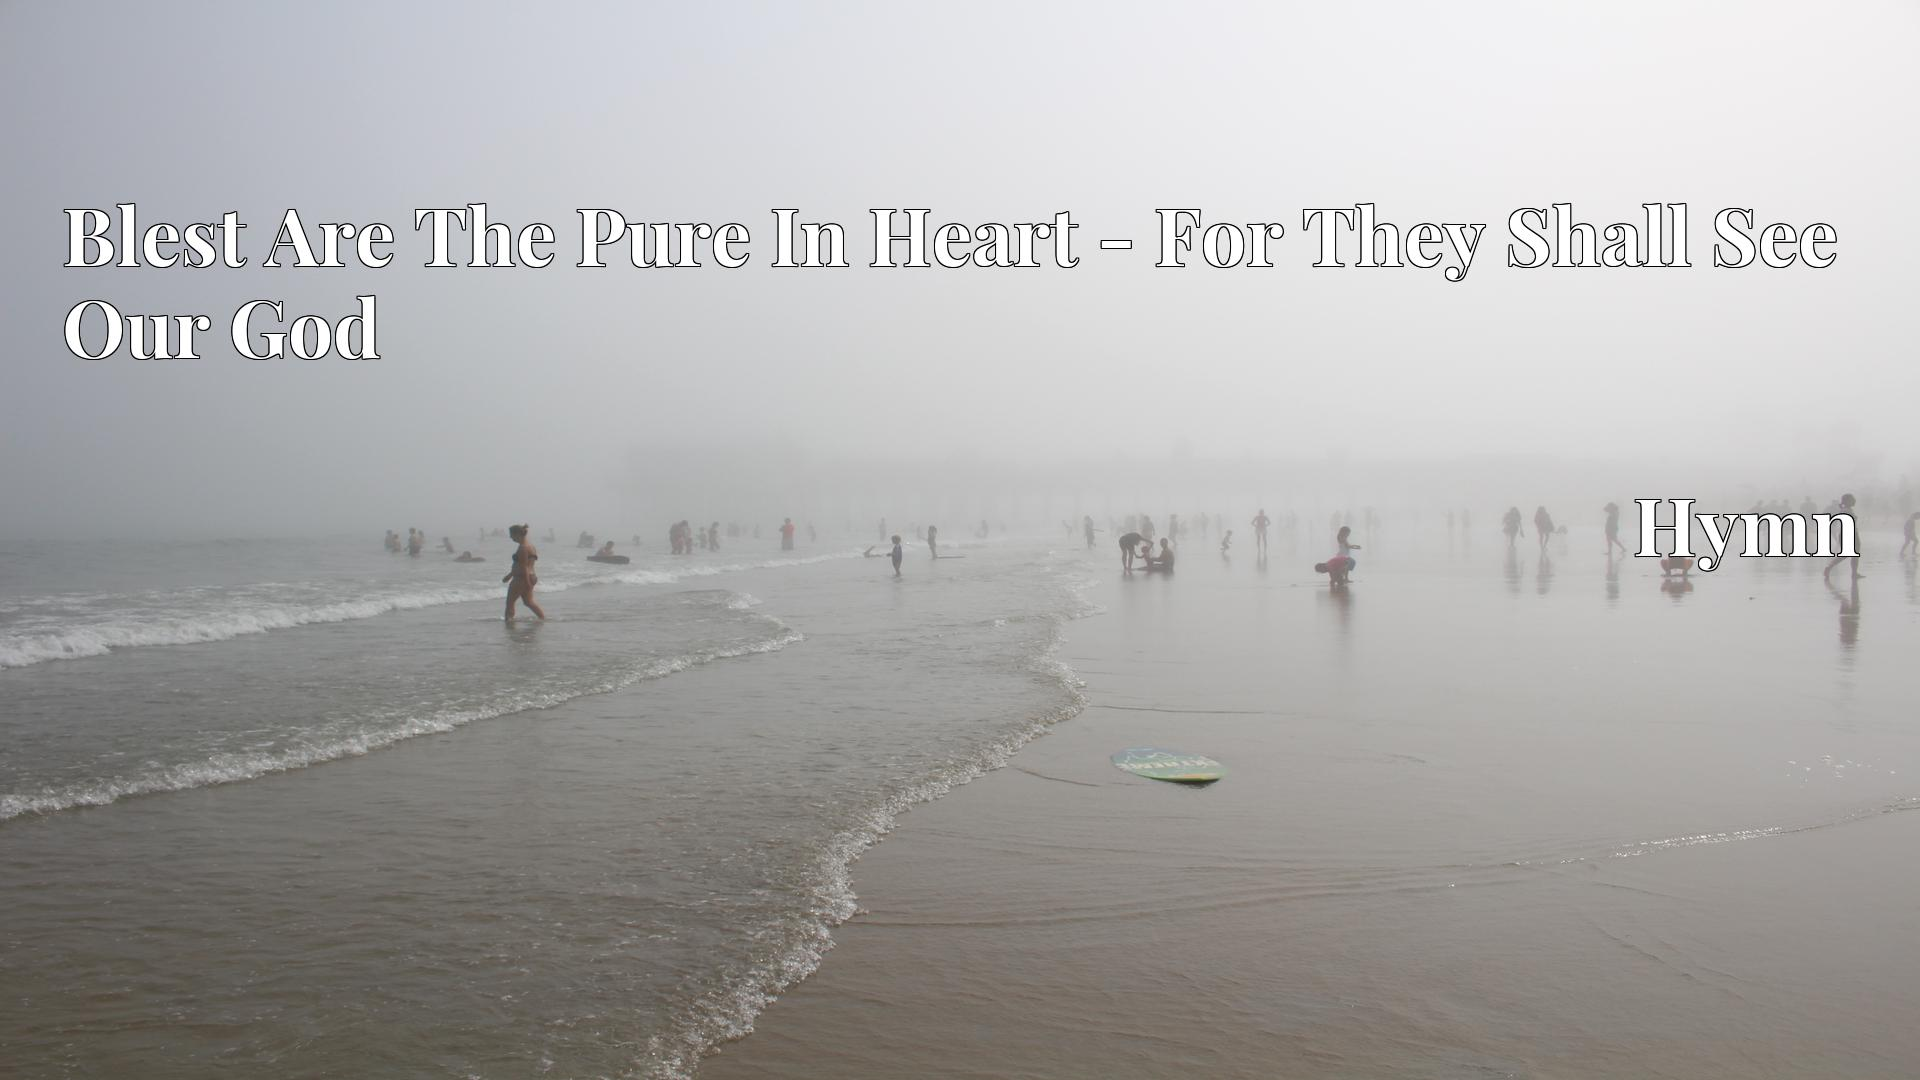 Blest Are The Pure In Heart - For They Shall See Our God Hymn